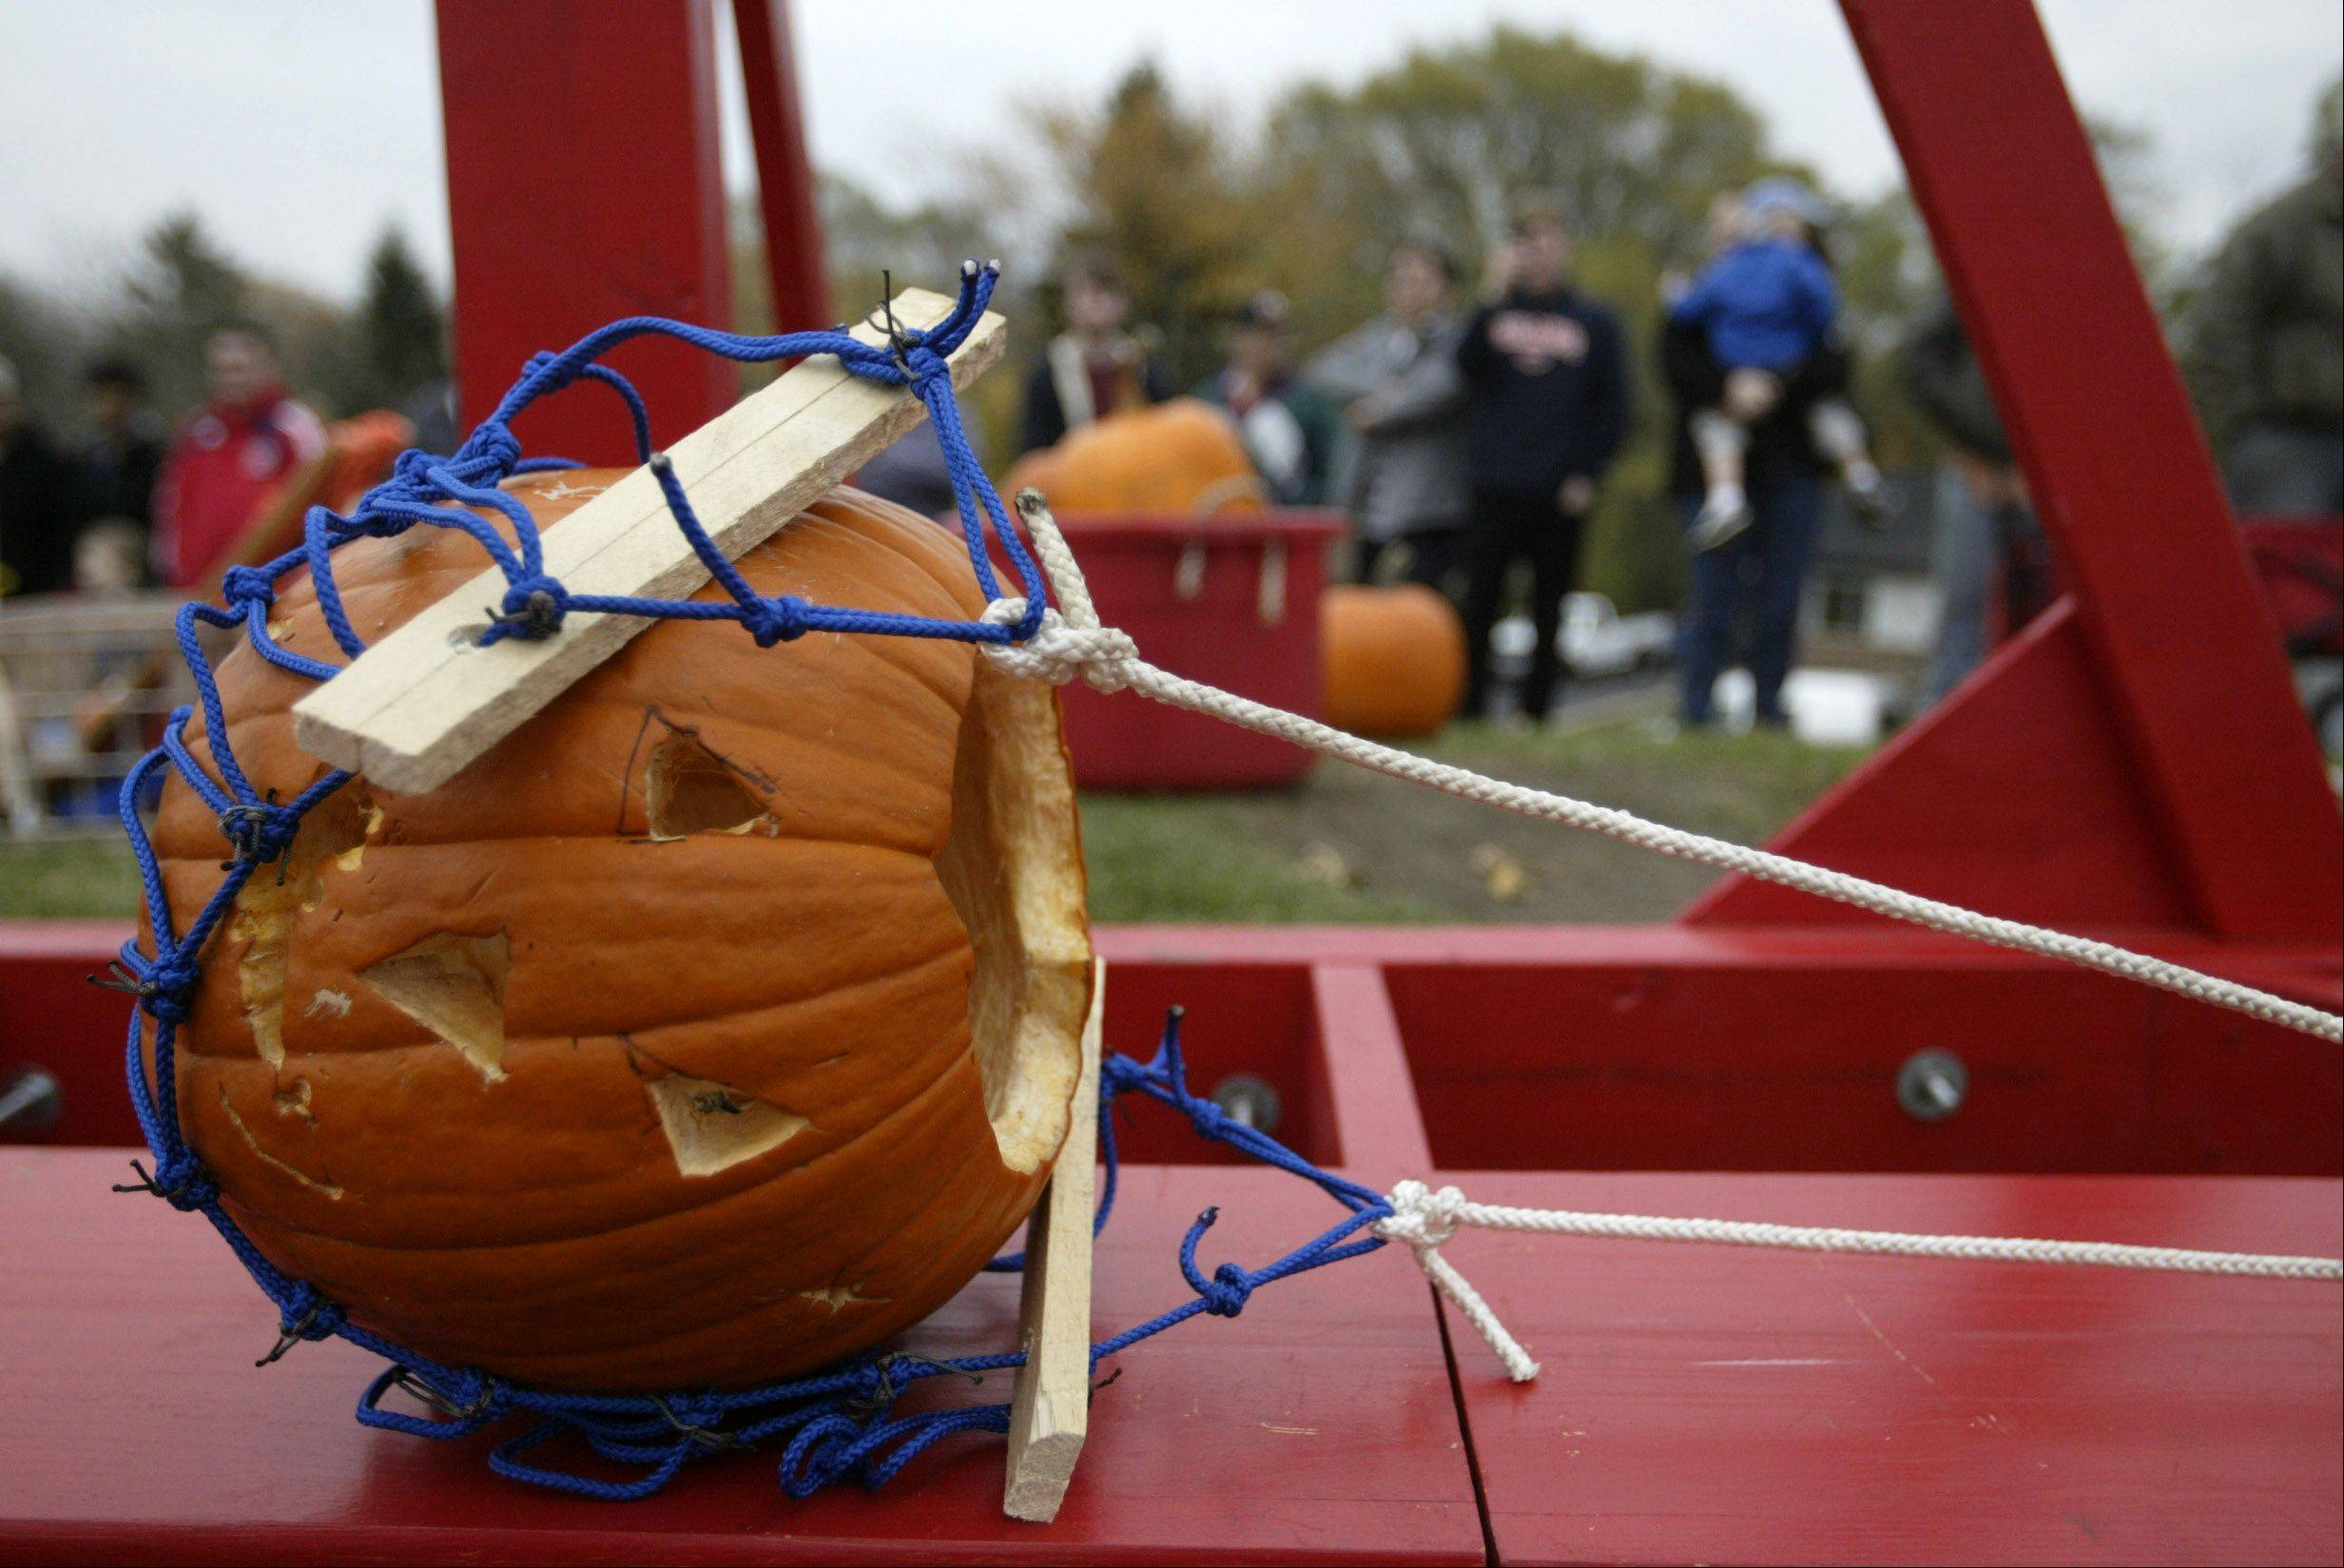 Watch pumpkins fly in Mundelein at the Annual Pumpkin Drop.